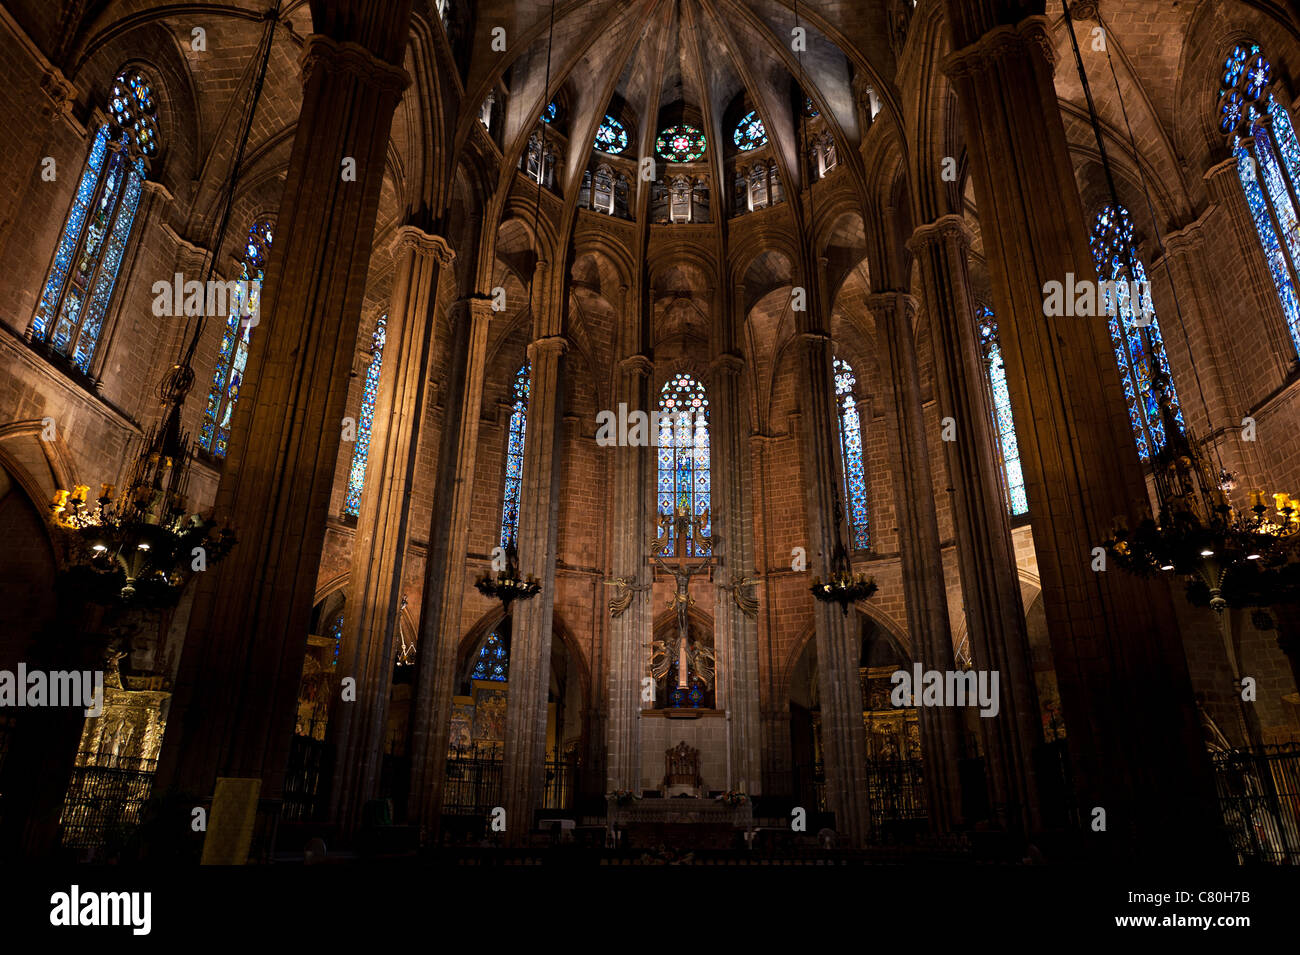 Cathedral of Santa Eulalia in Barcelona, Spain - Stock Image